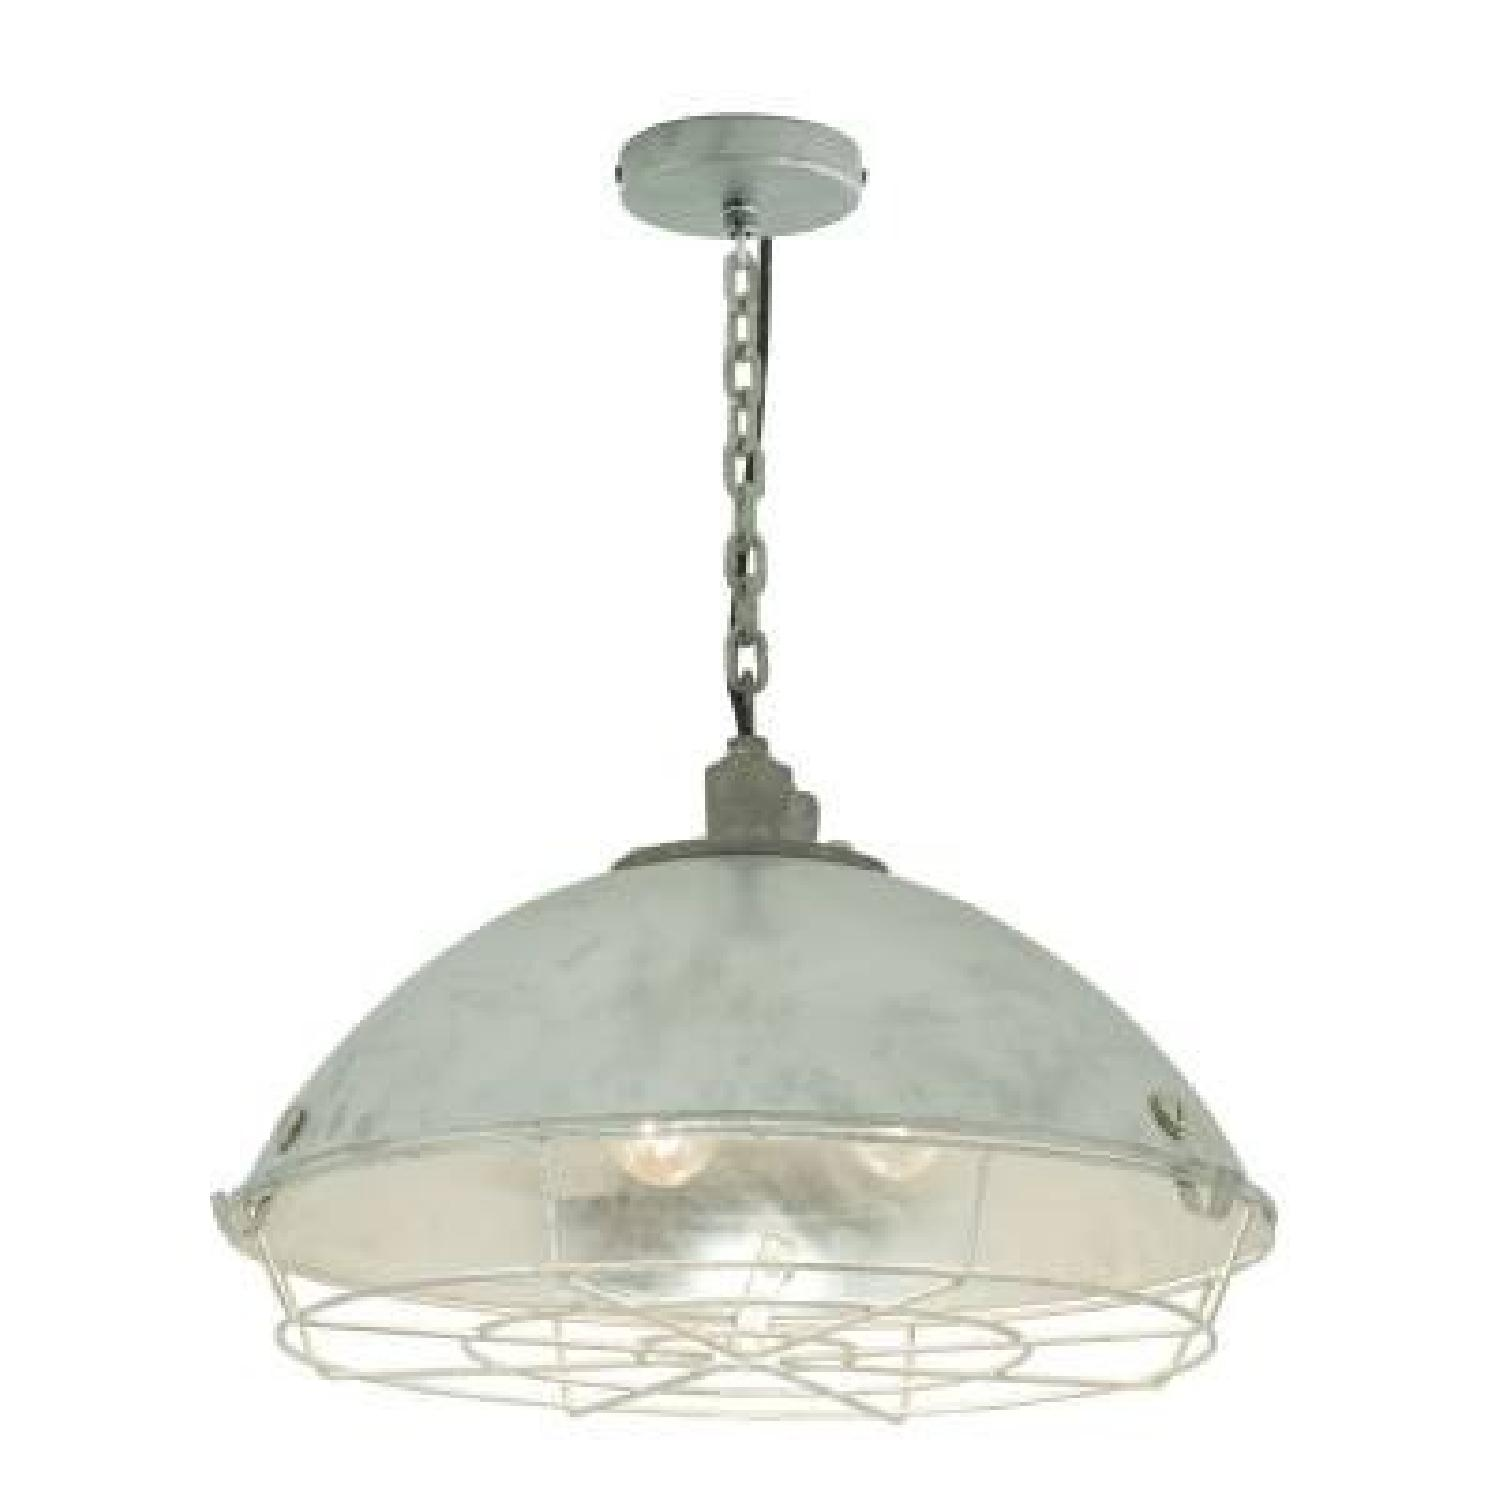 Original BTC Cargo Cluster Pendant Light ...